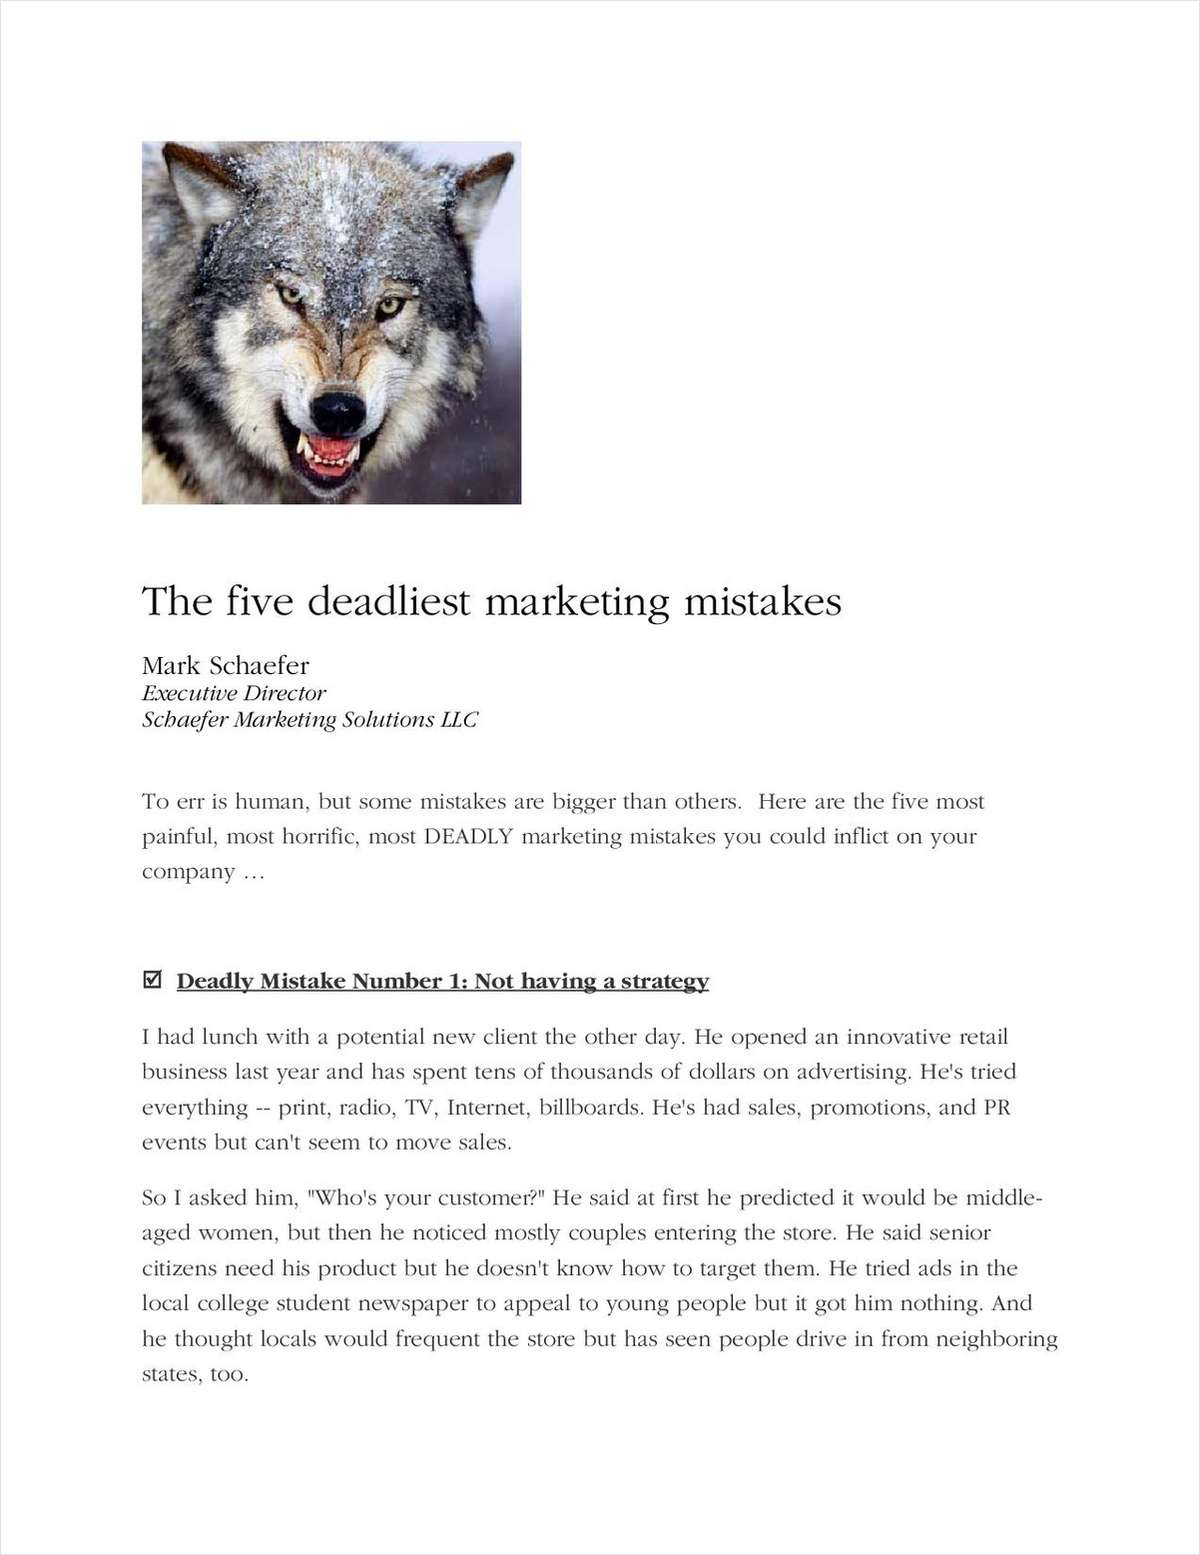 The 5 Deadliest Marketing Mistakes